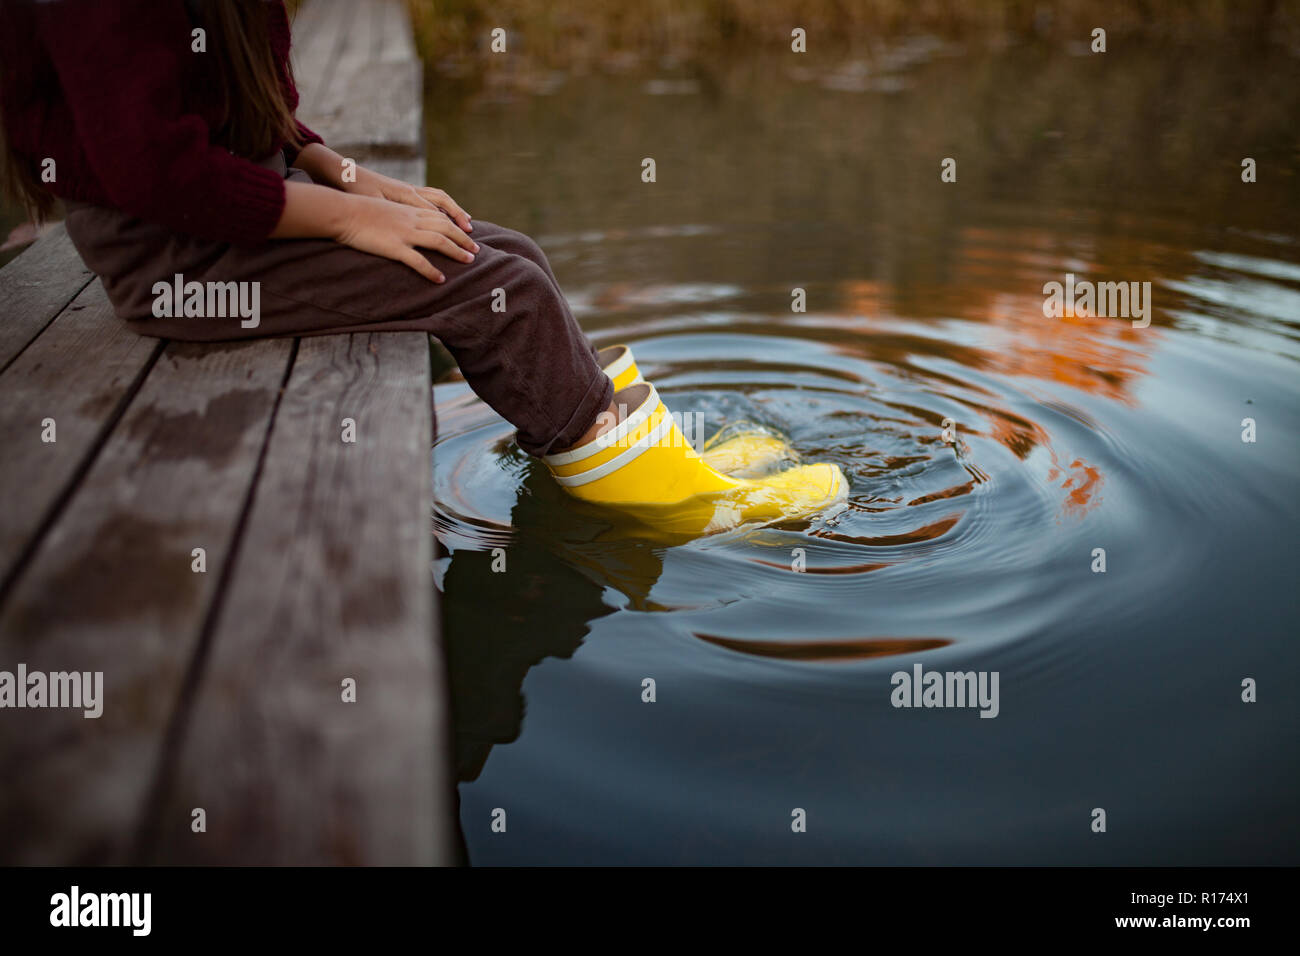 Boots And Stockfotosamp; Pants Stockfotosamp; And Pants Rubber Boots Rubber rtCsdxohQB